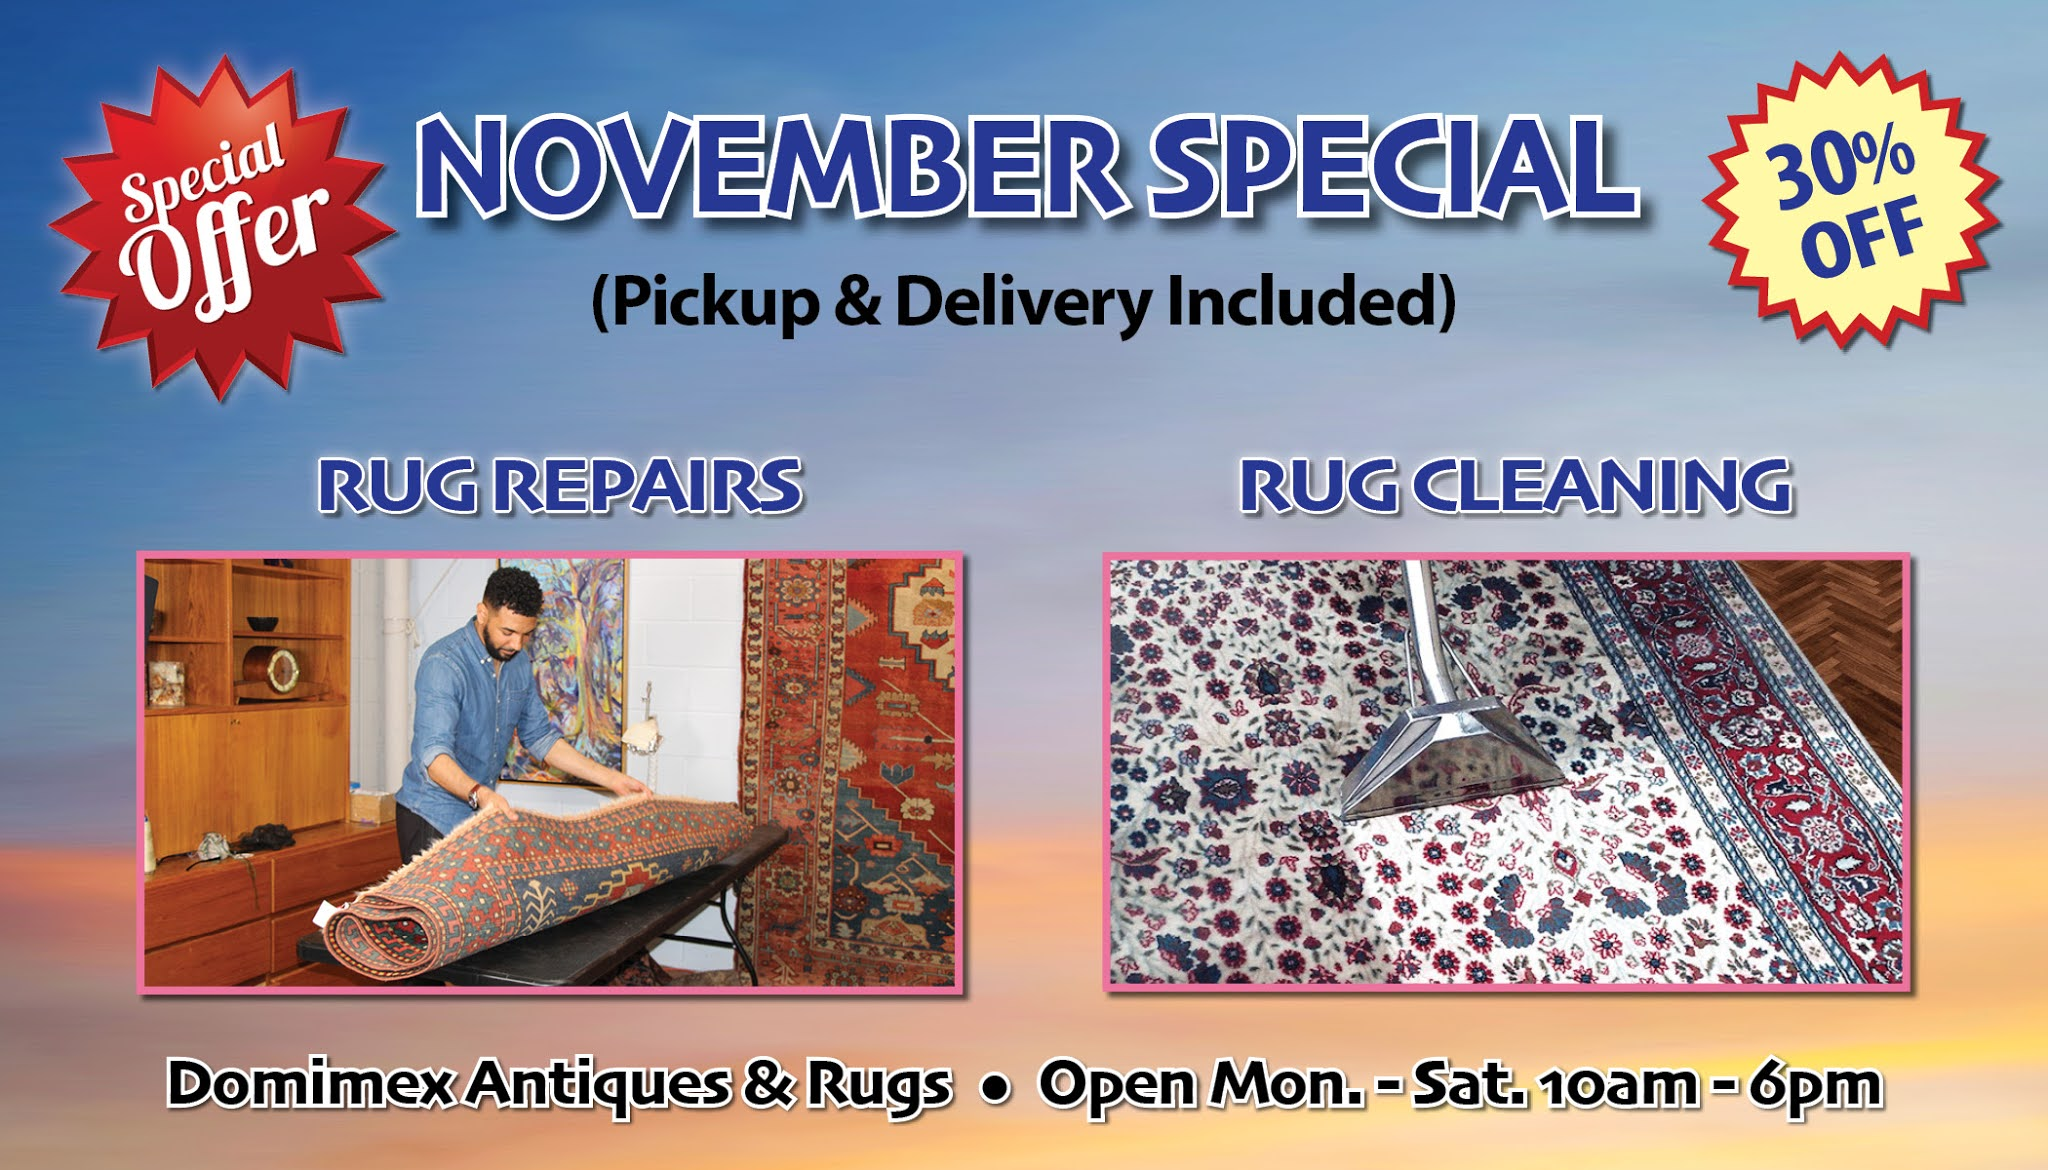 rug-cleaning-november-special-web-offer